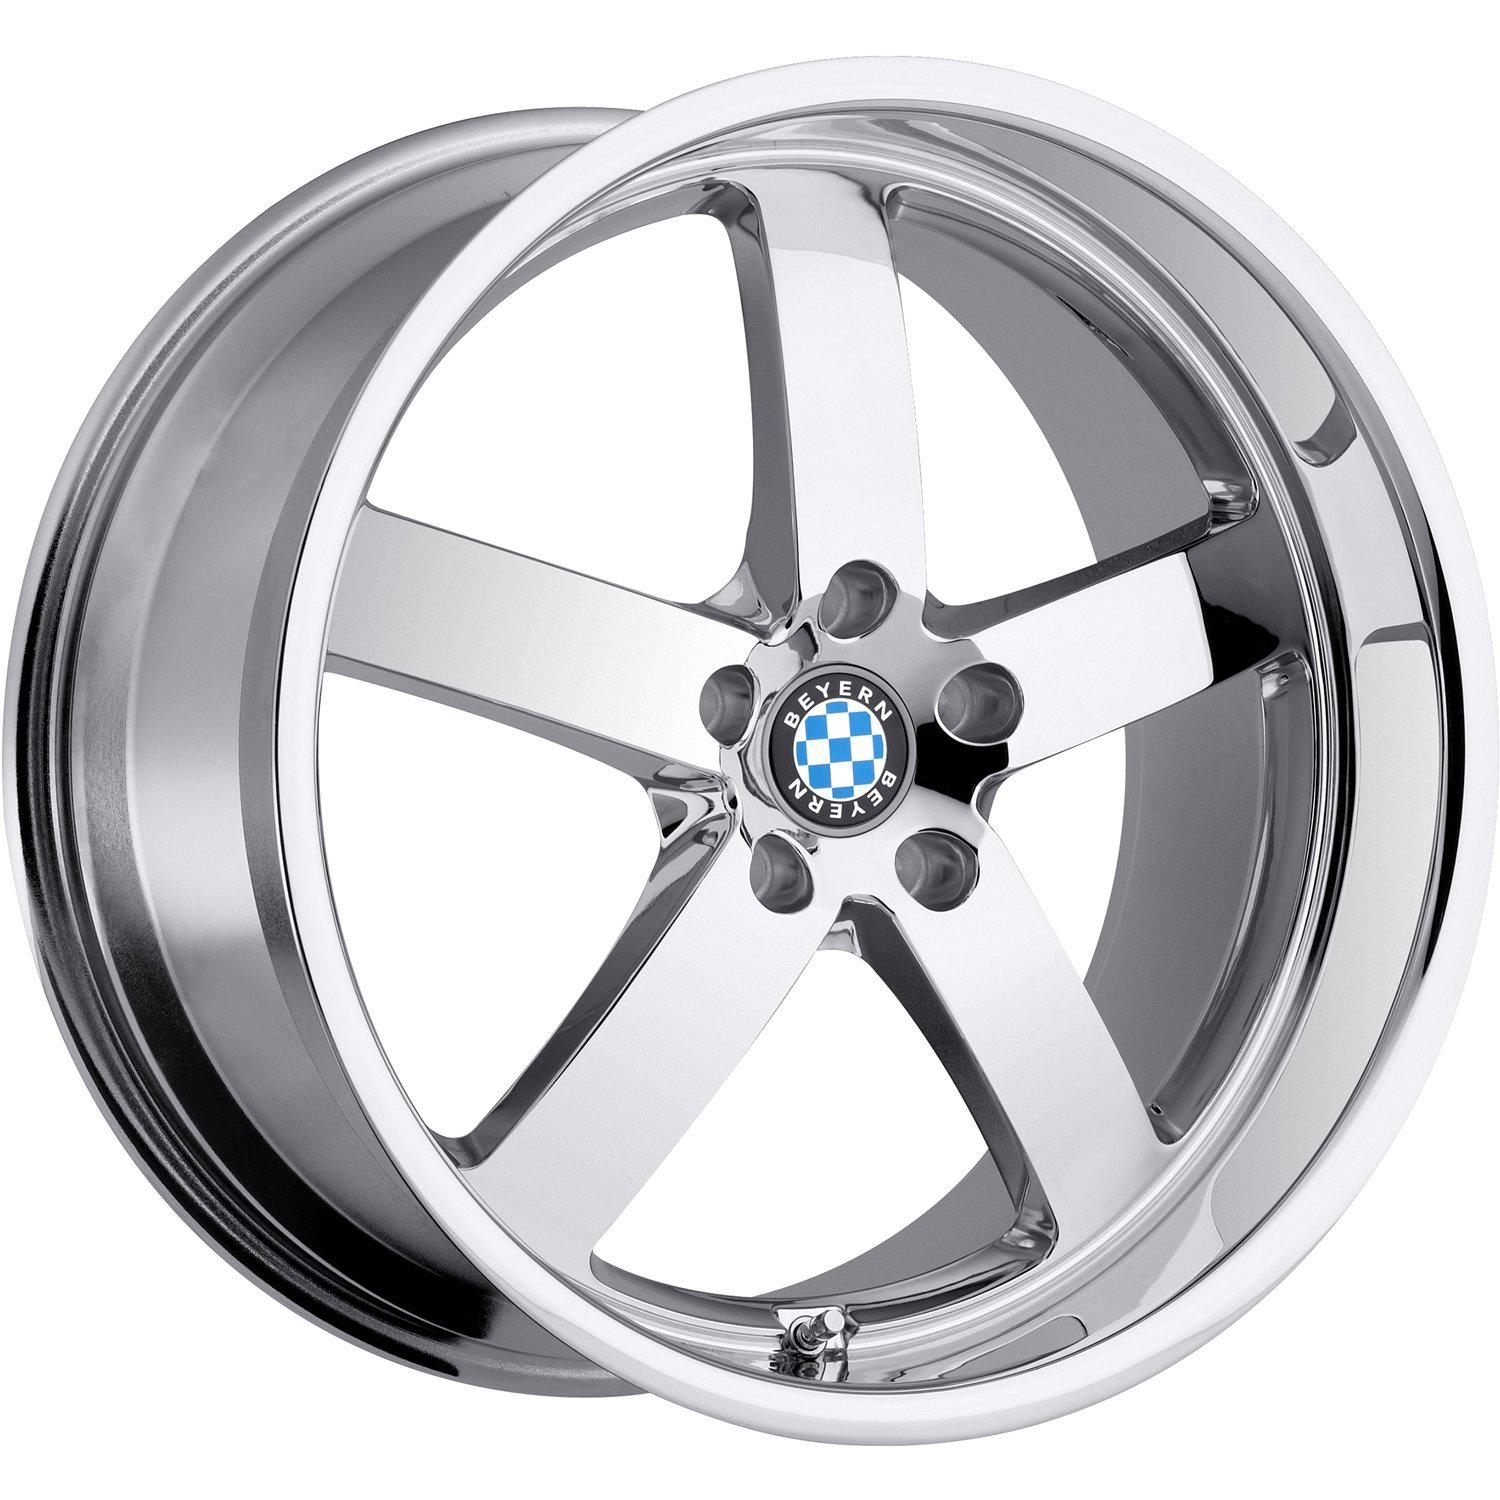 Cheap 22 Inch Rims Chrome find 22 Inch Rims Chrome deals on line at